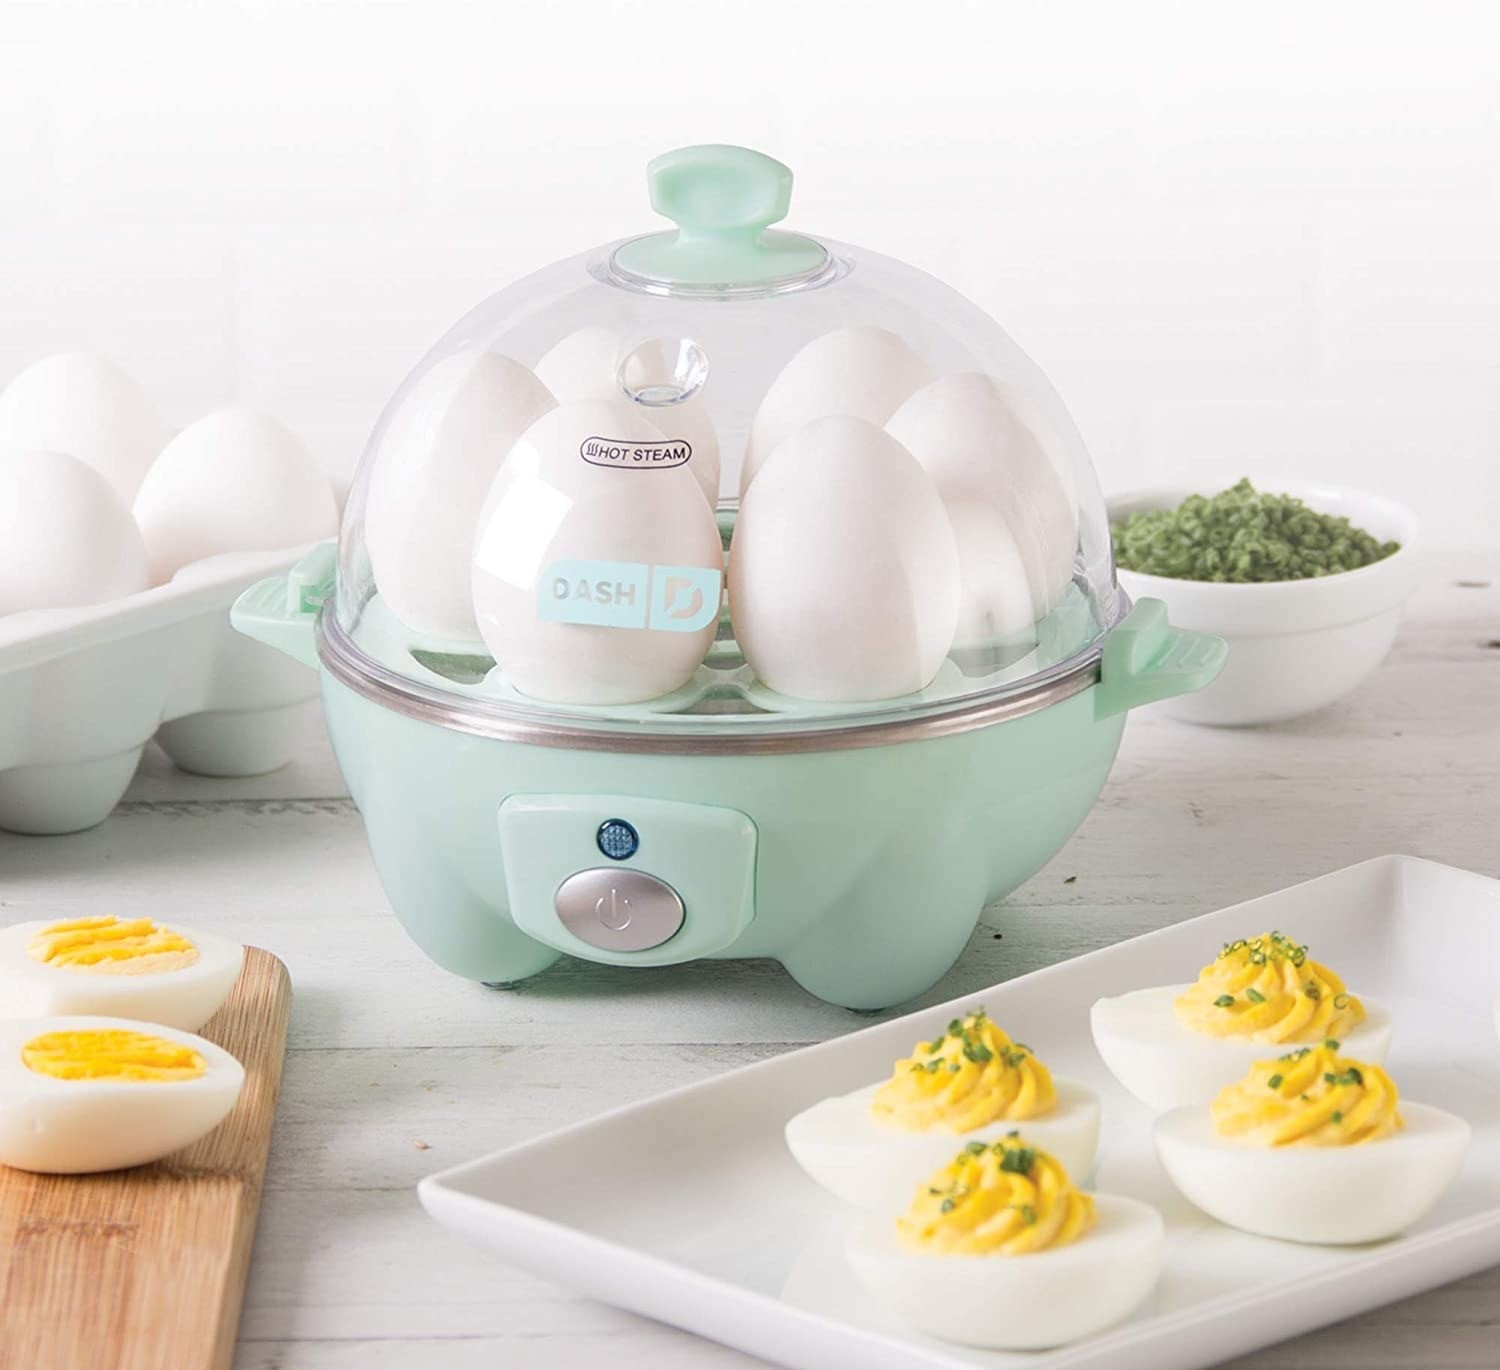 The egg cooker on a countertop next to some devilled eggs